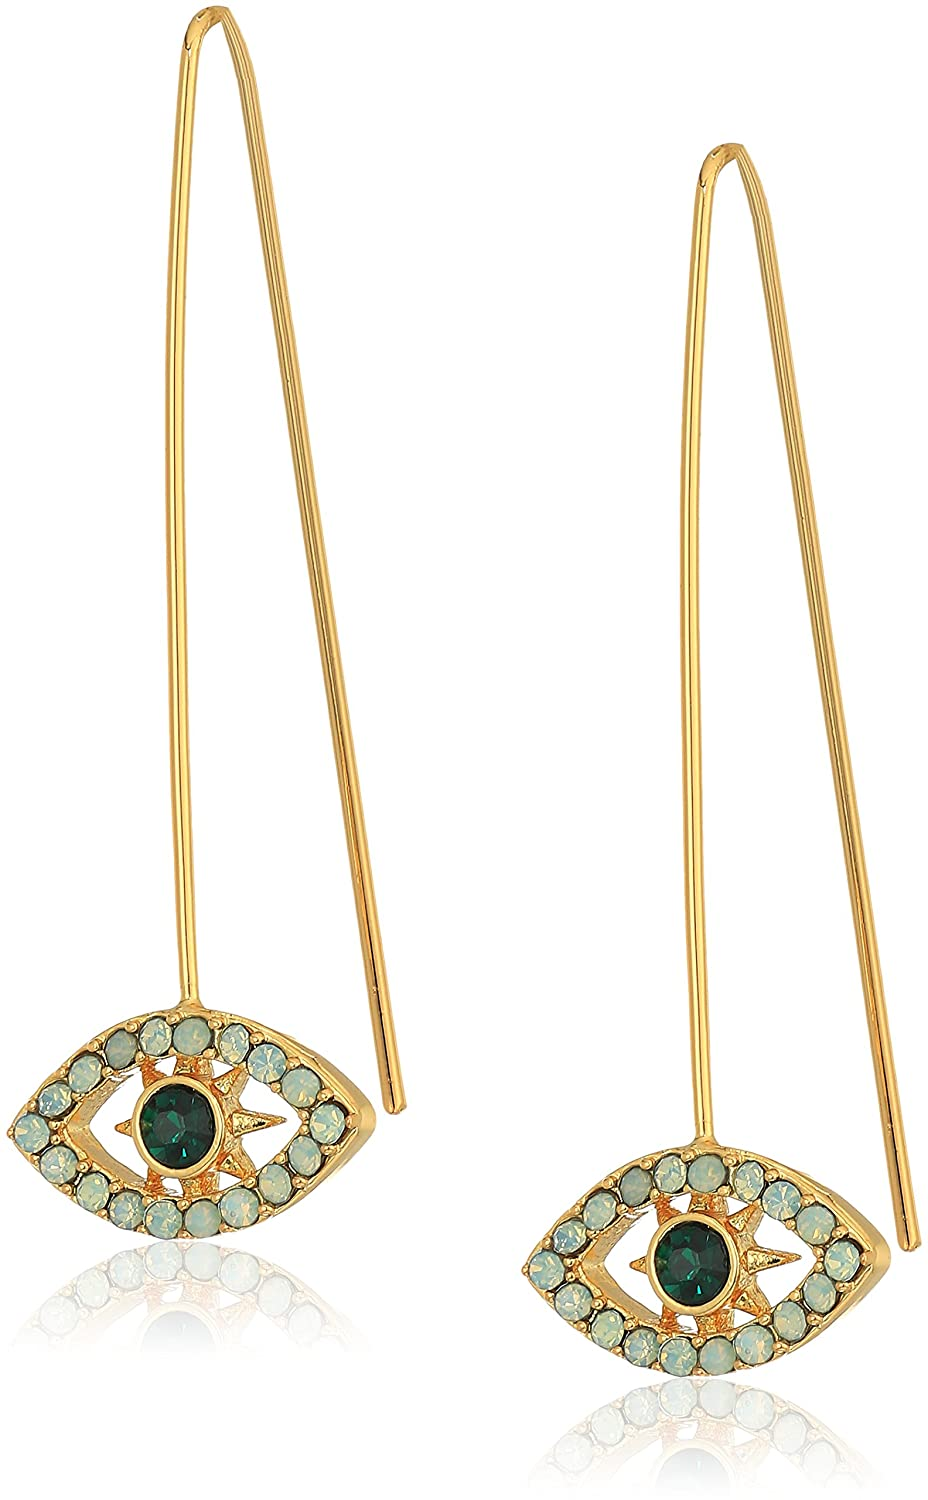 rebecca minkoff celestial evil eye threader drop earrings E22667R1